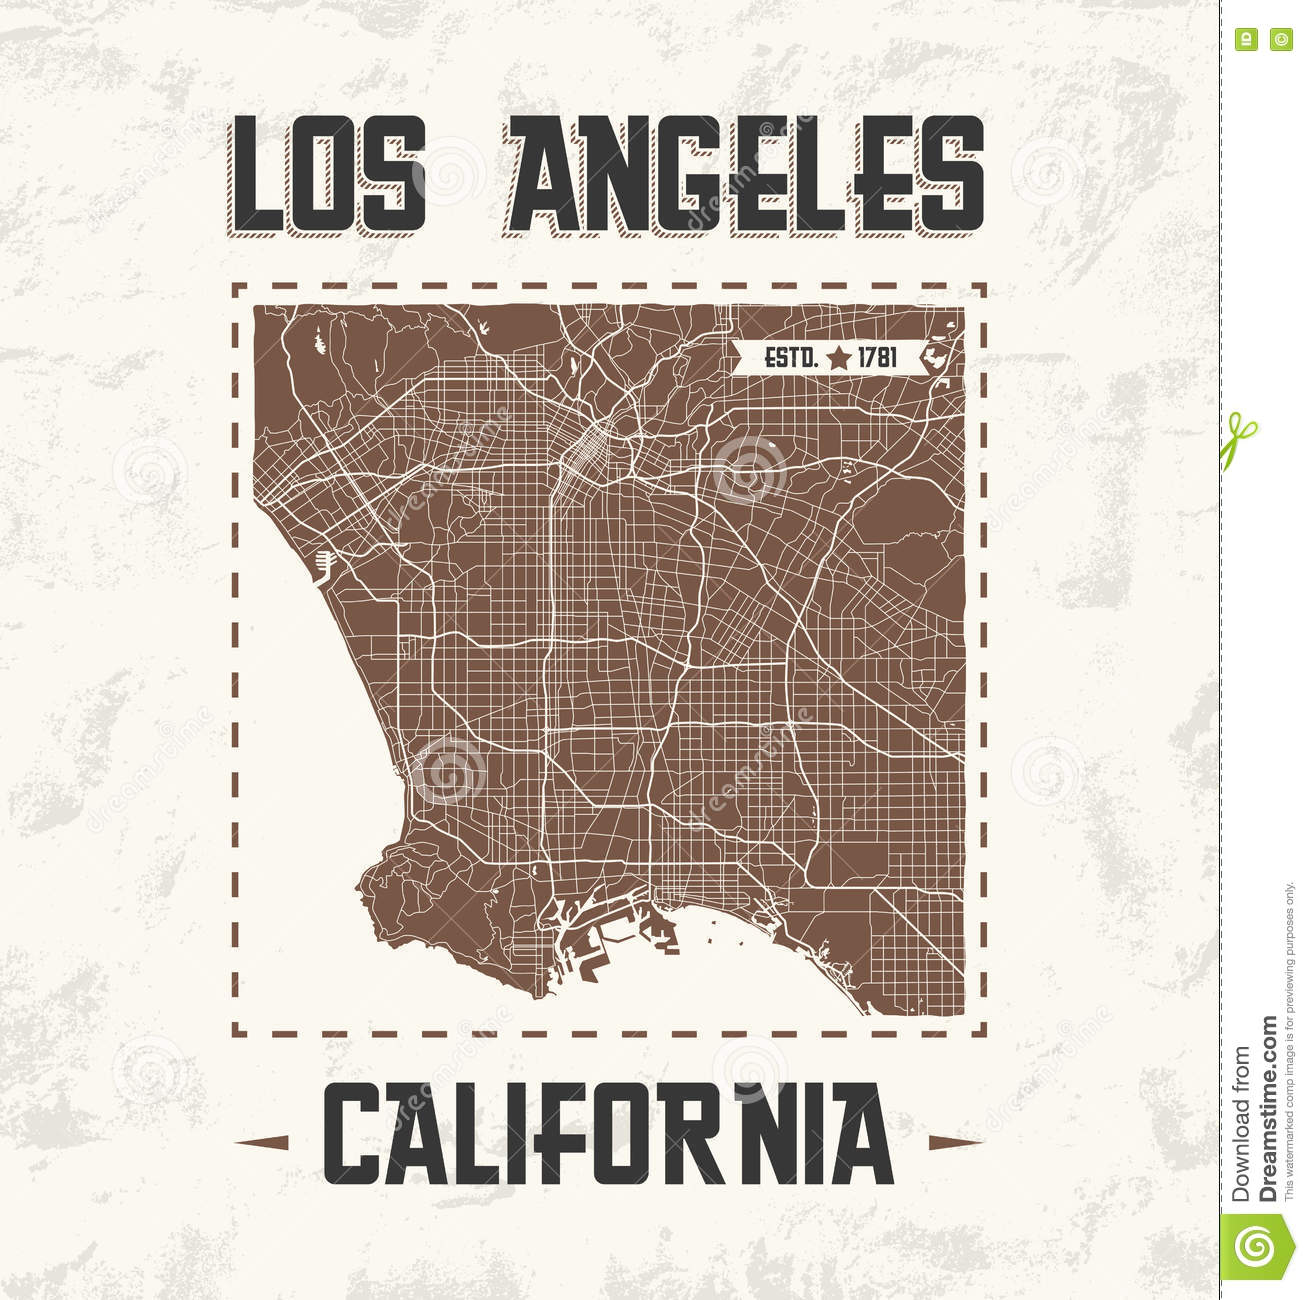 Los angeles vintage t shirt graphic design with city map Logo designers los angeles